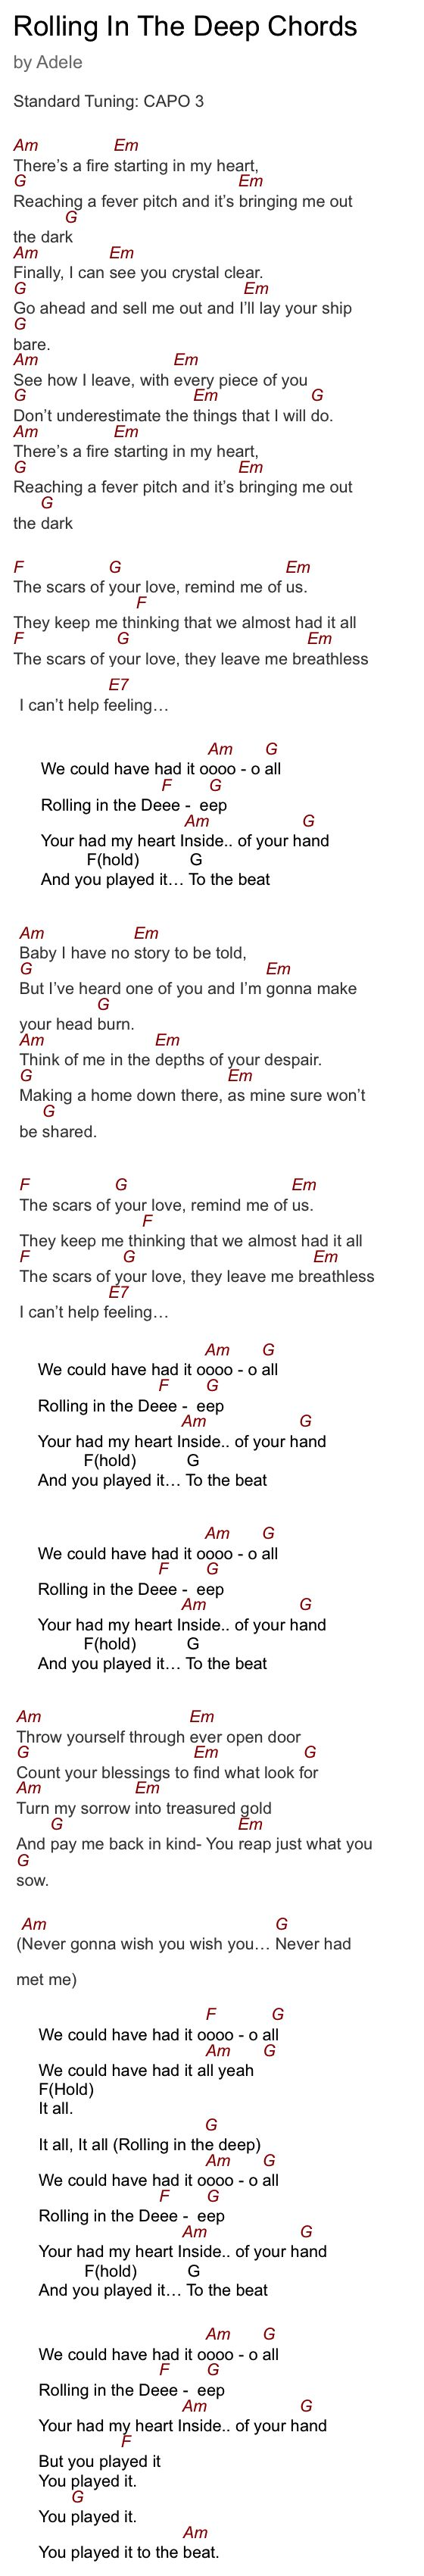 Adele's- Rolling in the Deep Guitar Chords CAPO 3 #guitarlessons